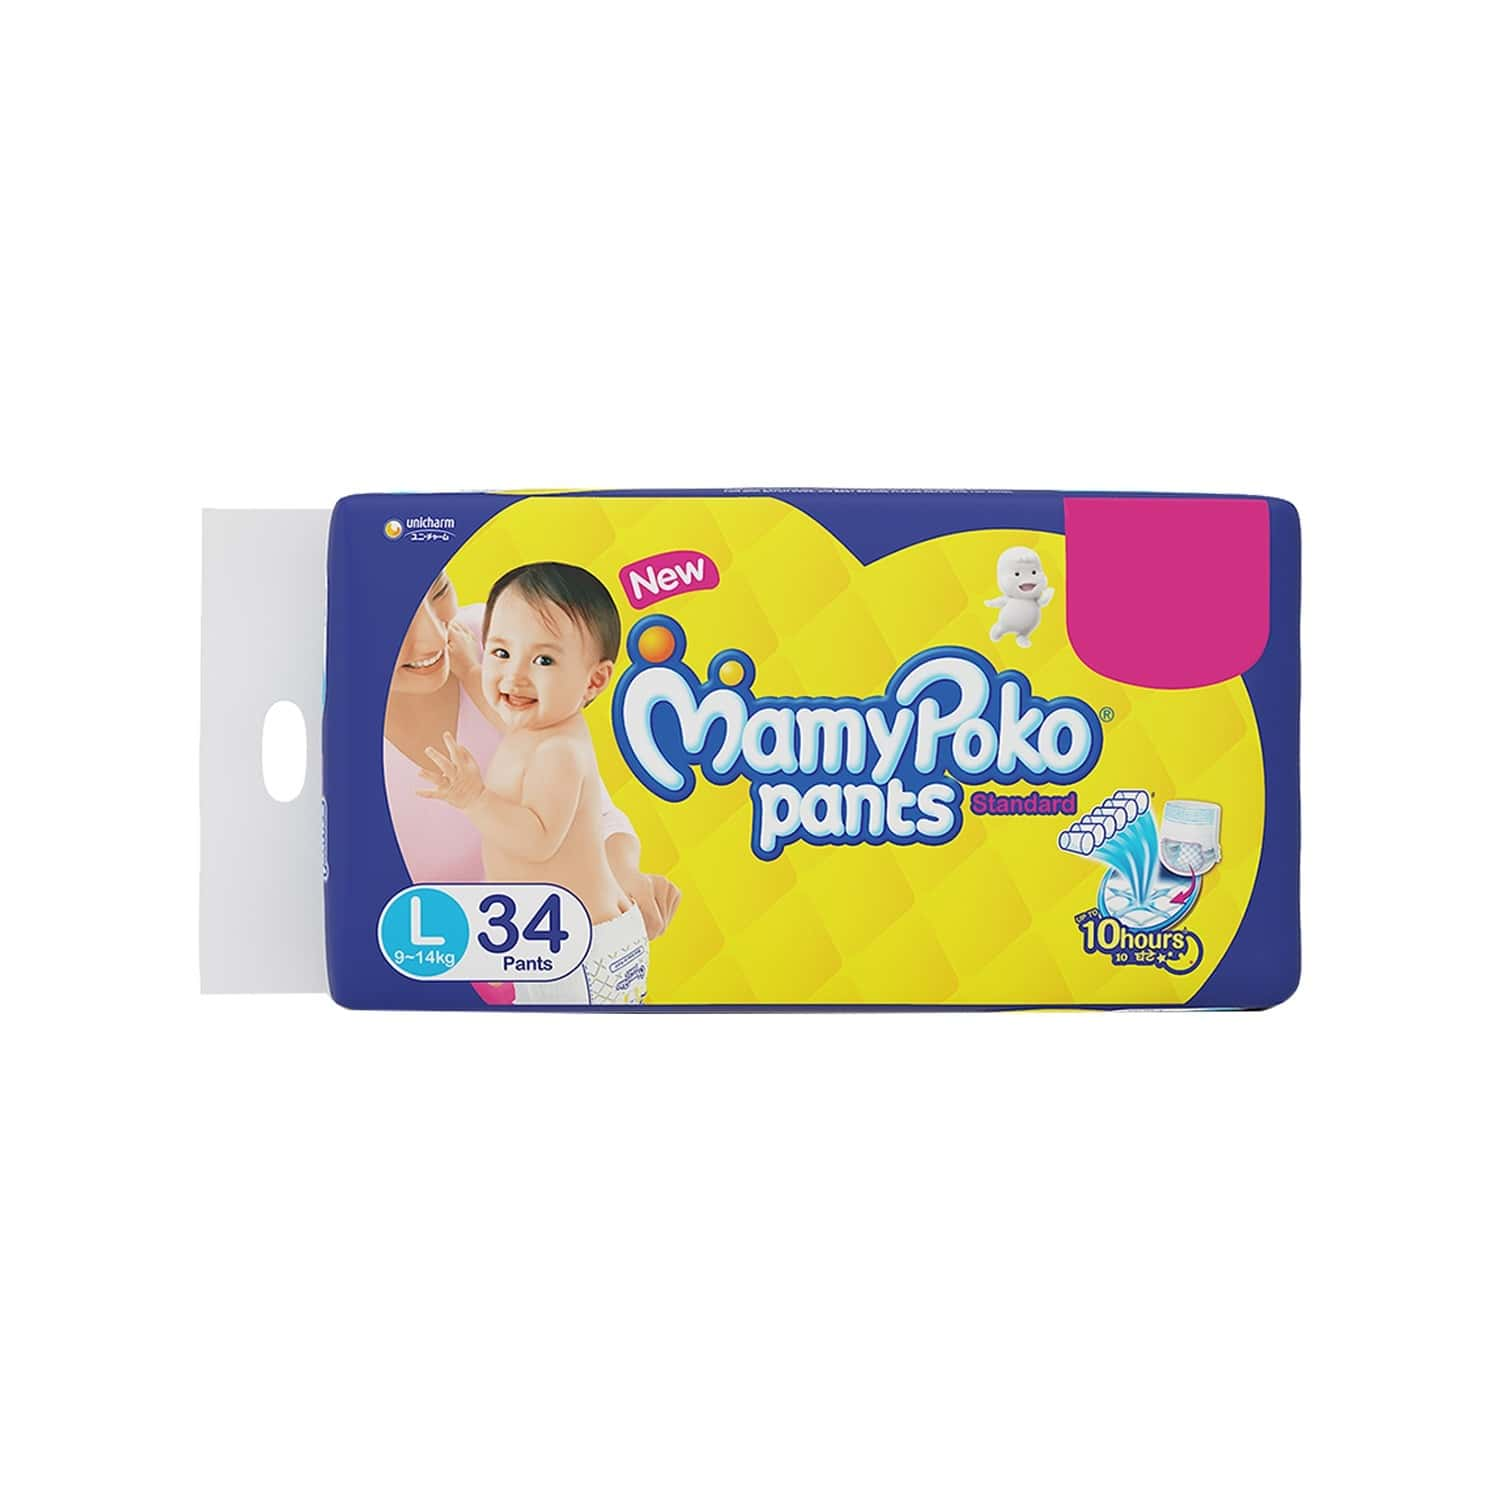 Mamy Poko Pants Standard Pant Style Large Size Diapers - 34 Count